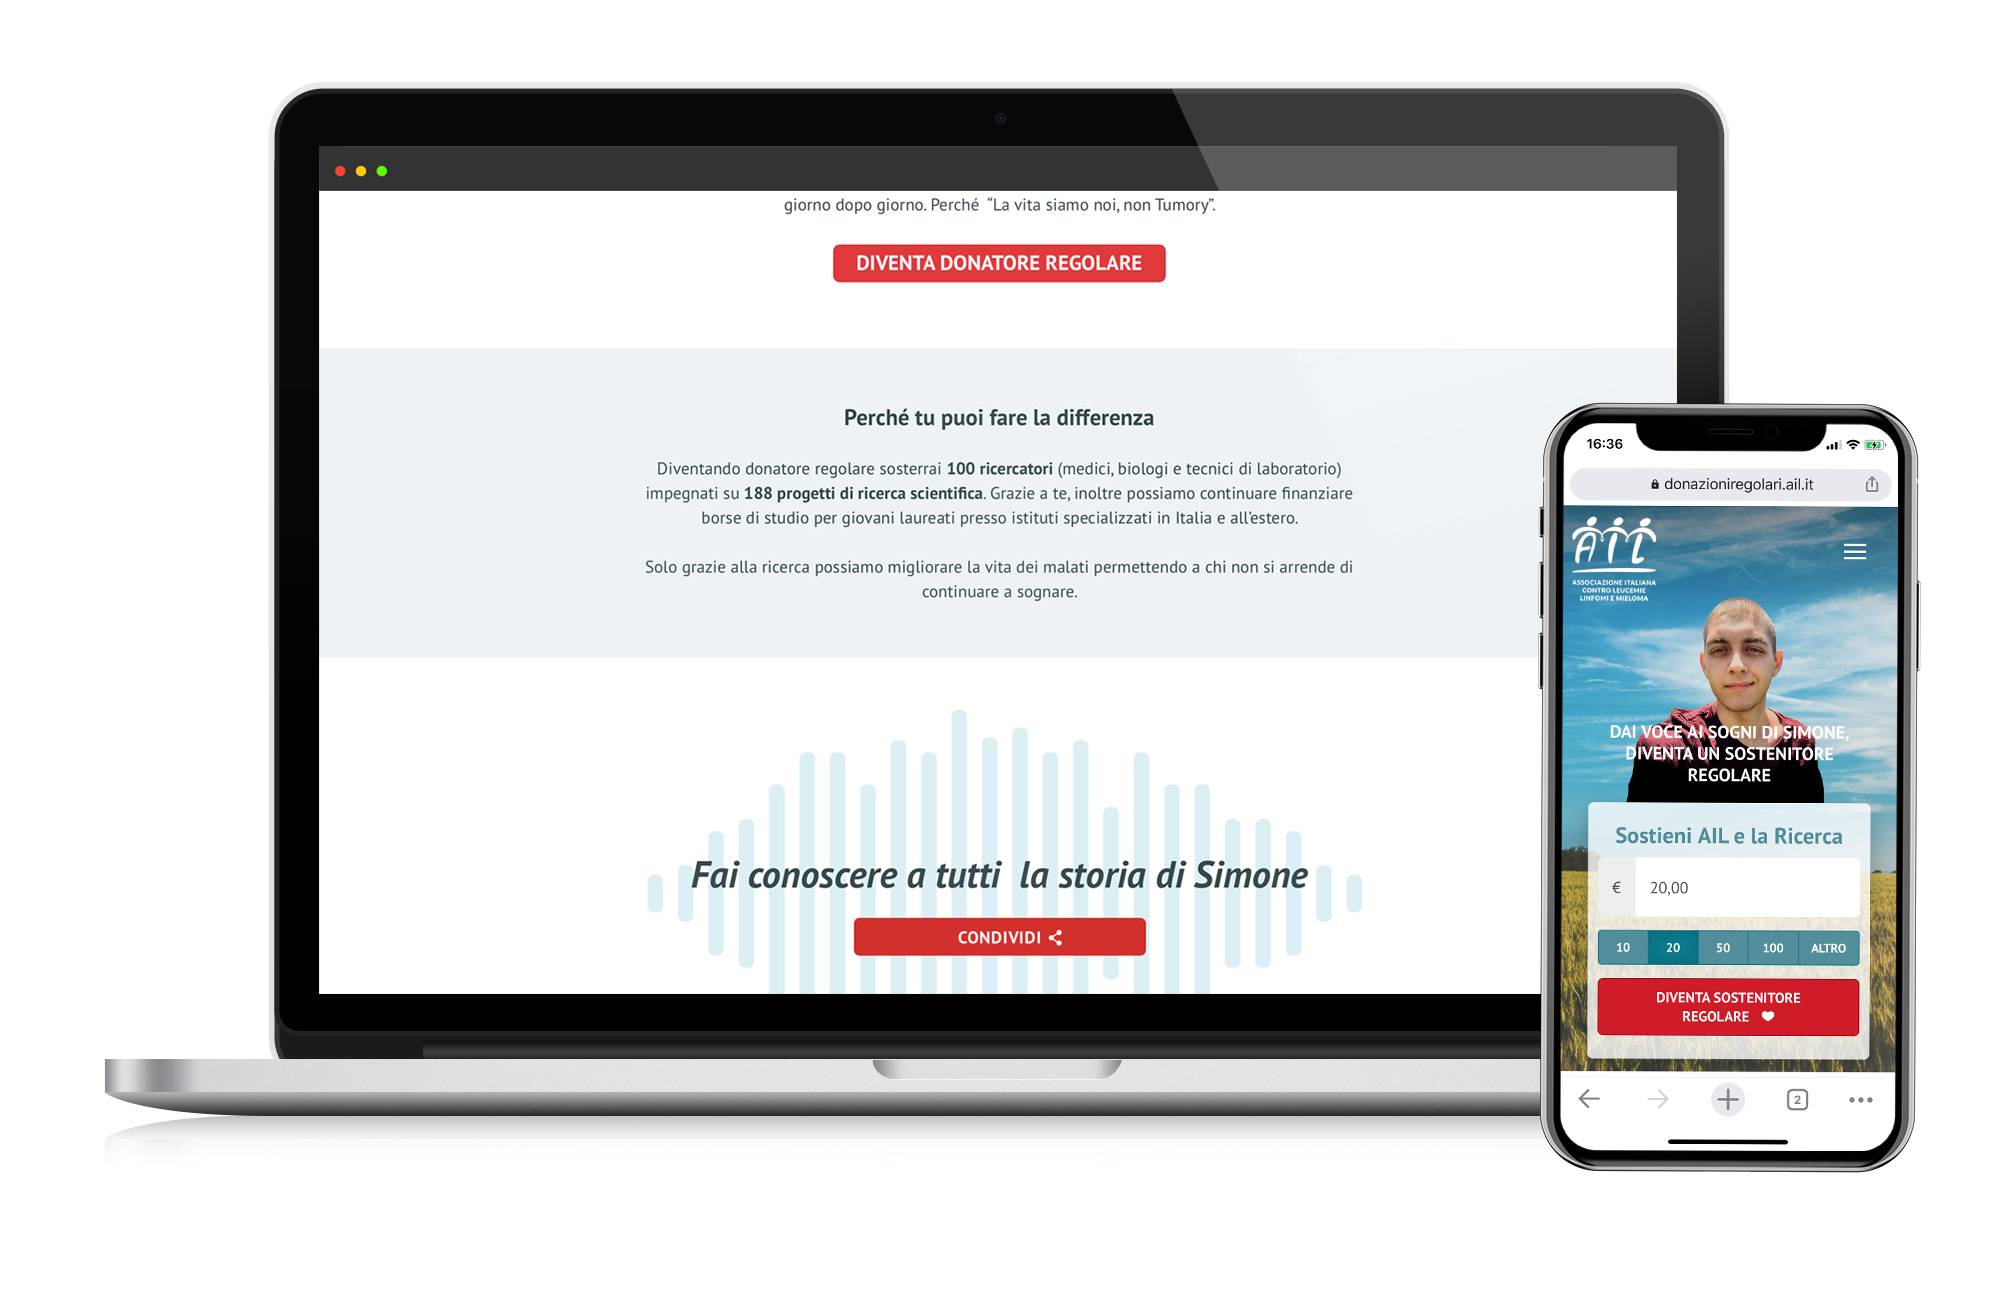 image of the responsive landing page